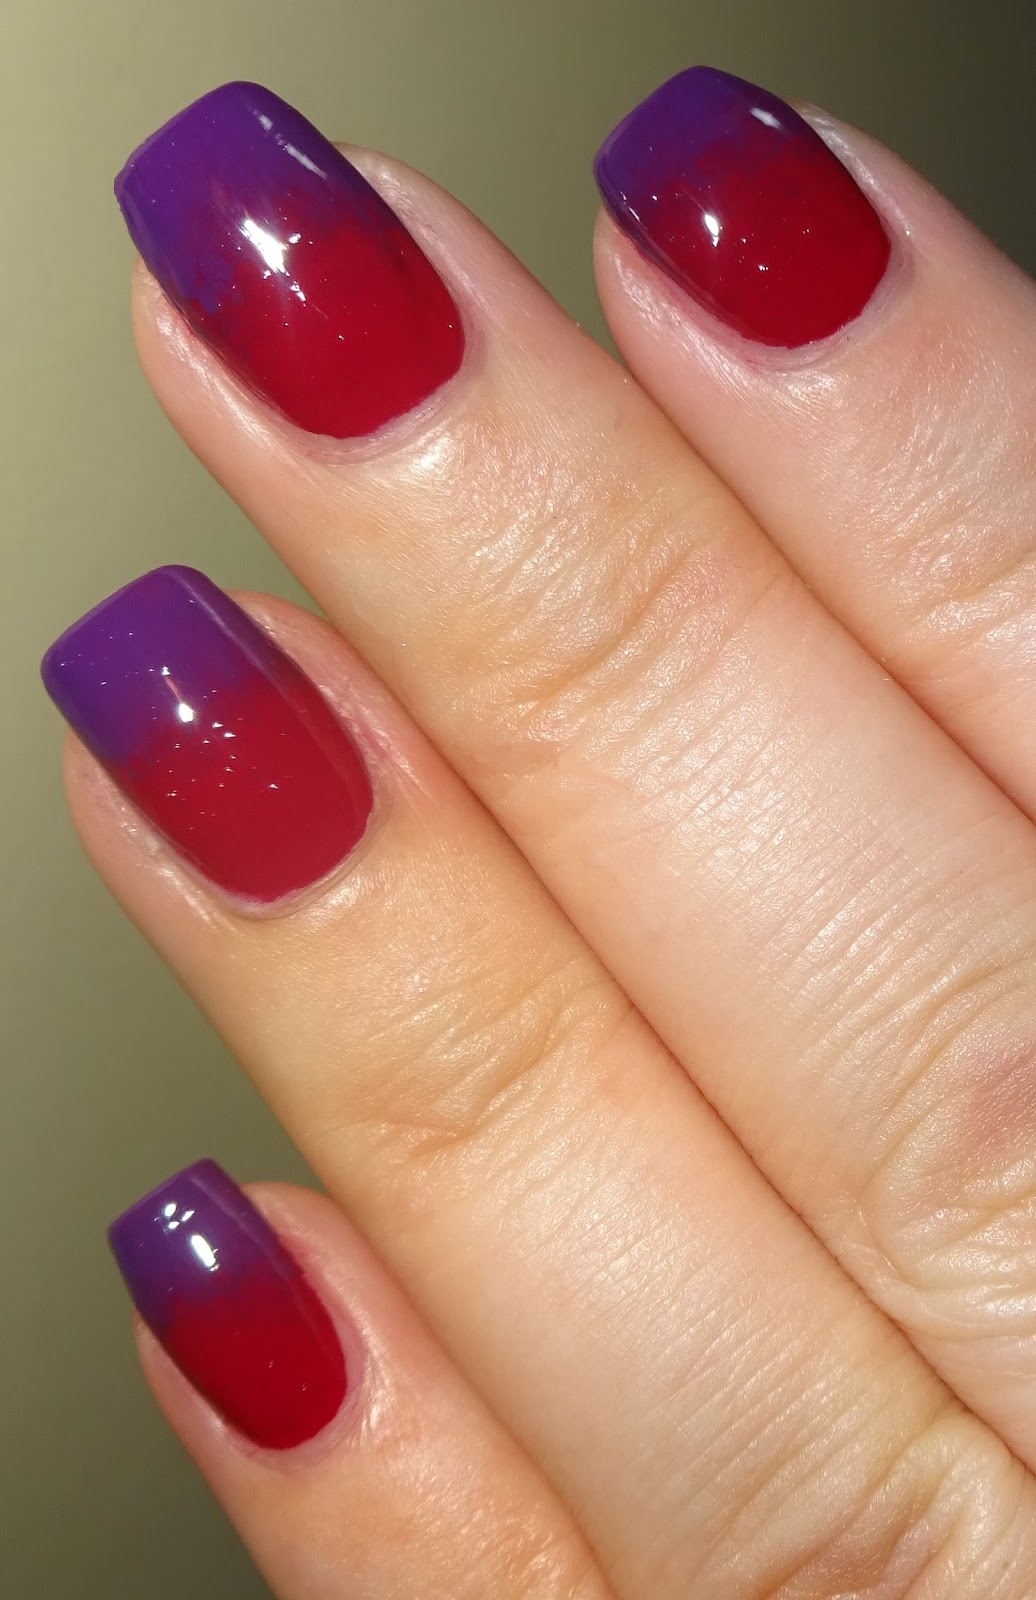 Wendy S Delights Basic Tutorial For A Sponged Gradient Using Avon Mark Gel Shine Nail Enamels